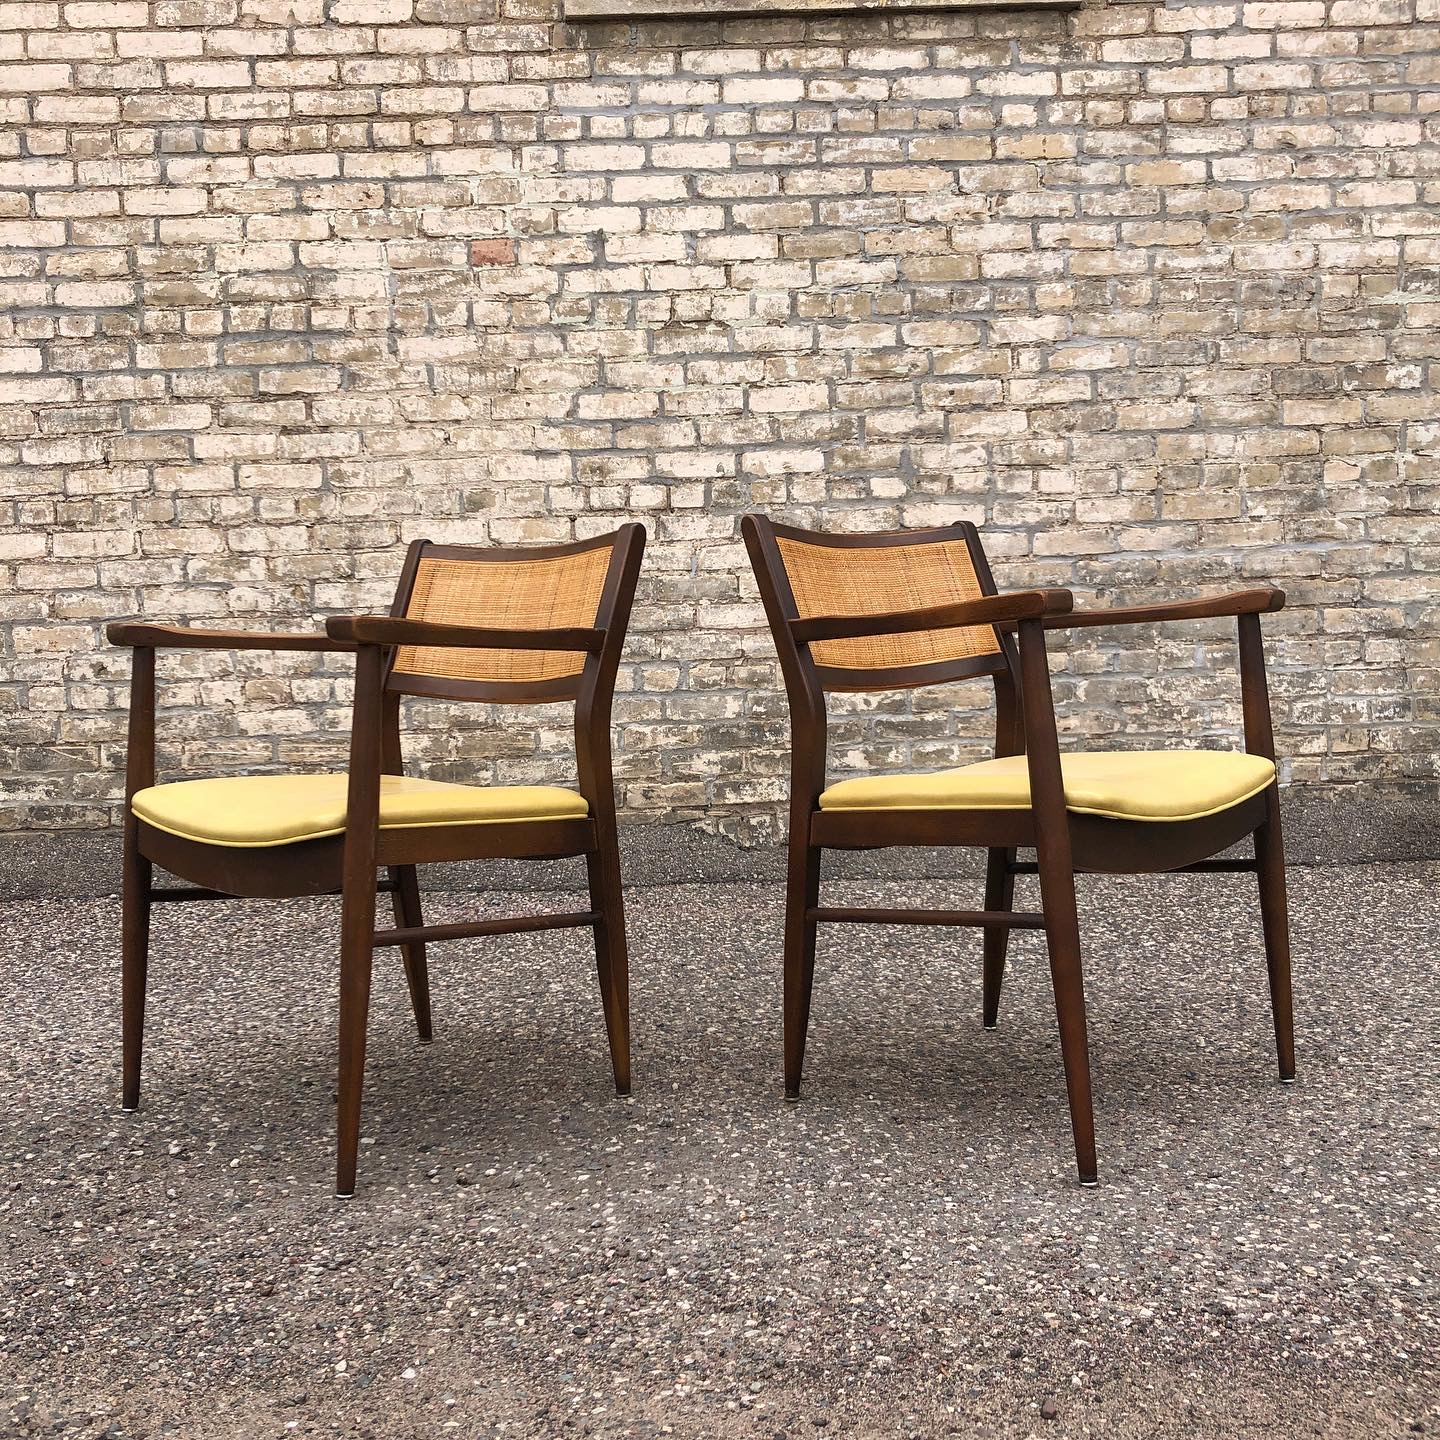 Shelby Williams wood frame accent chairs